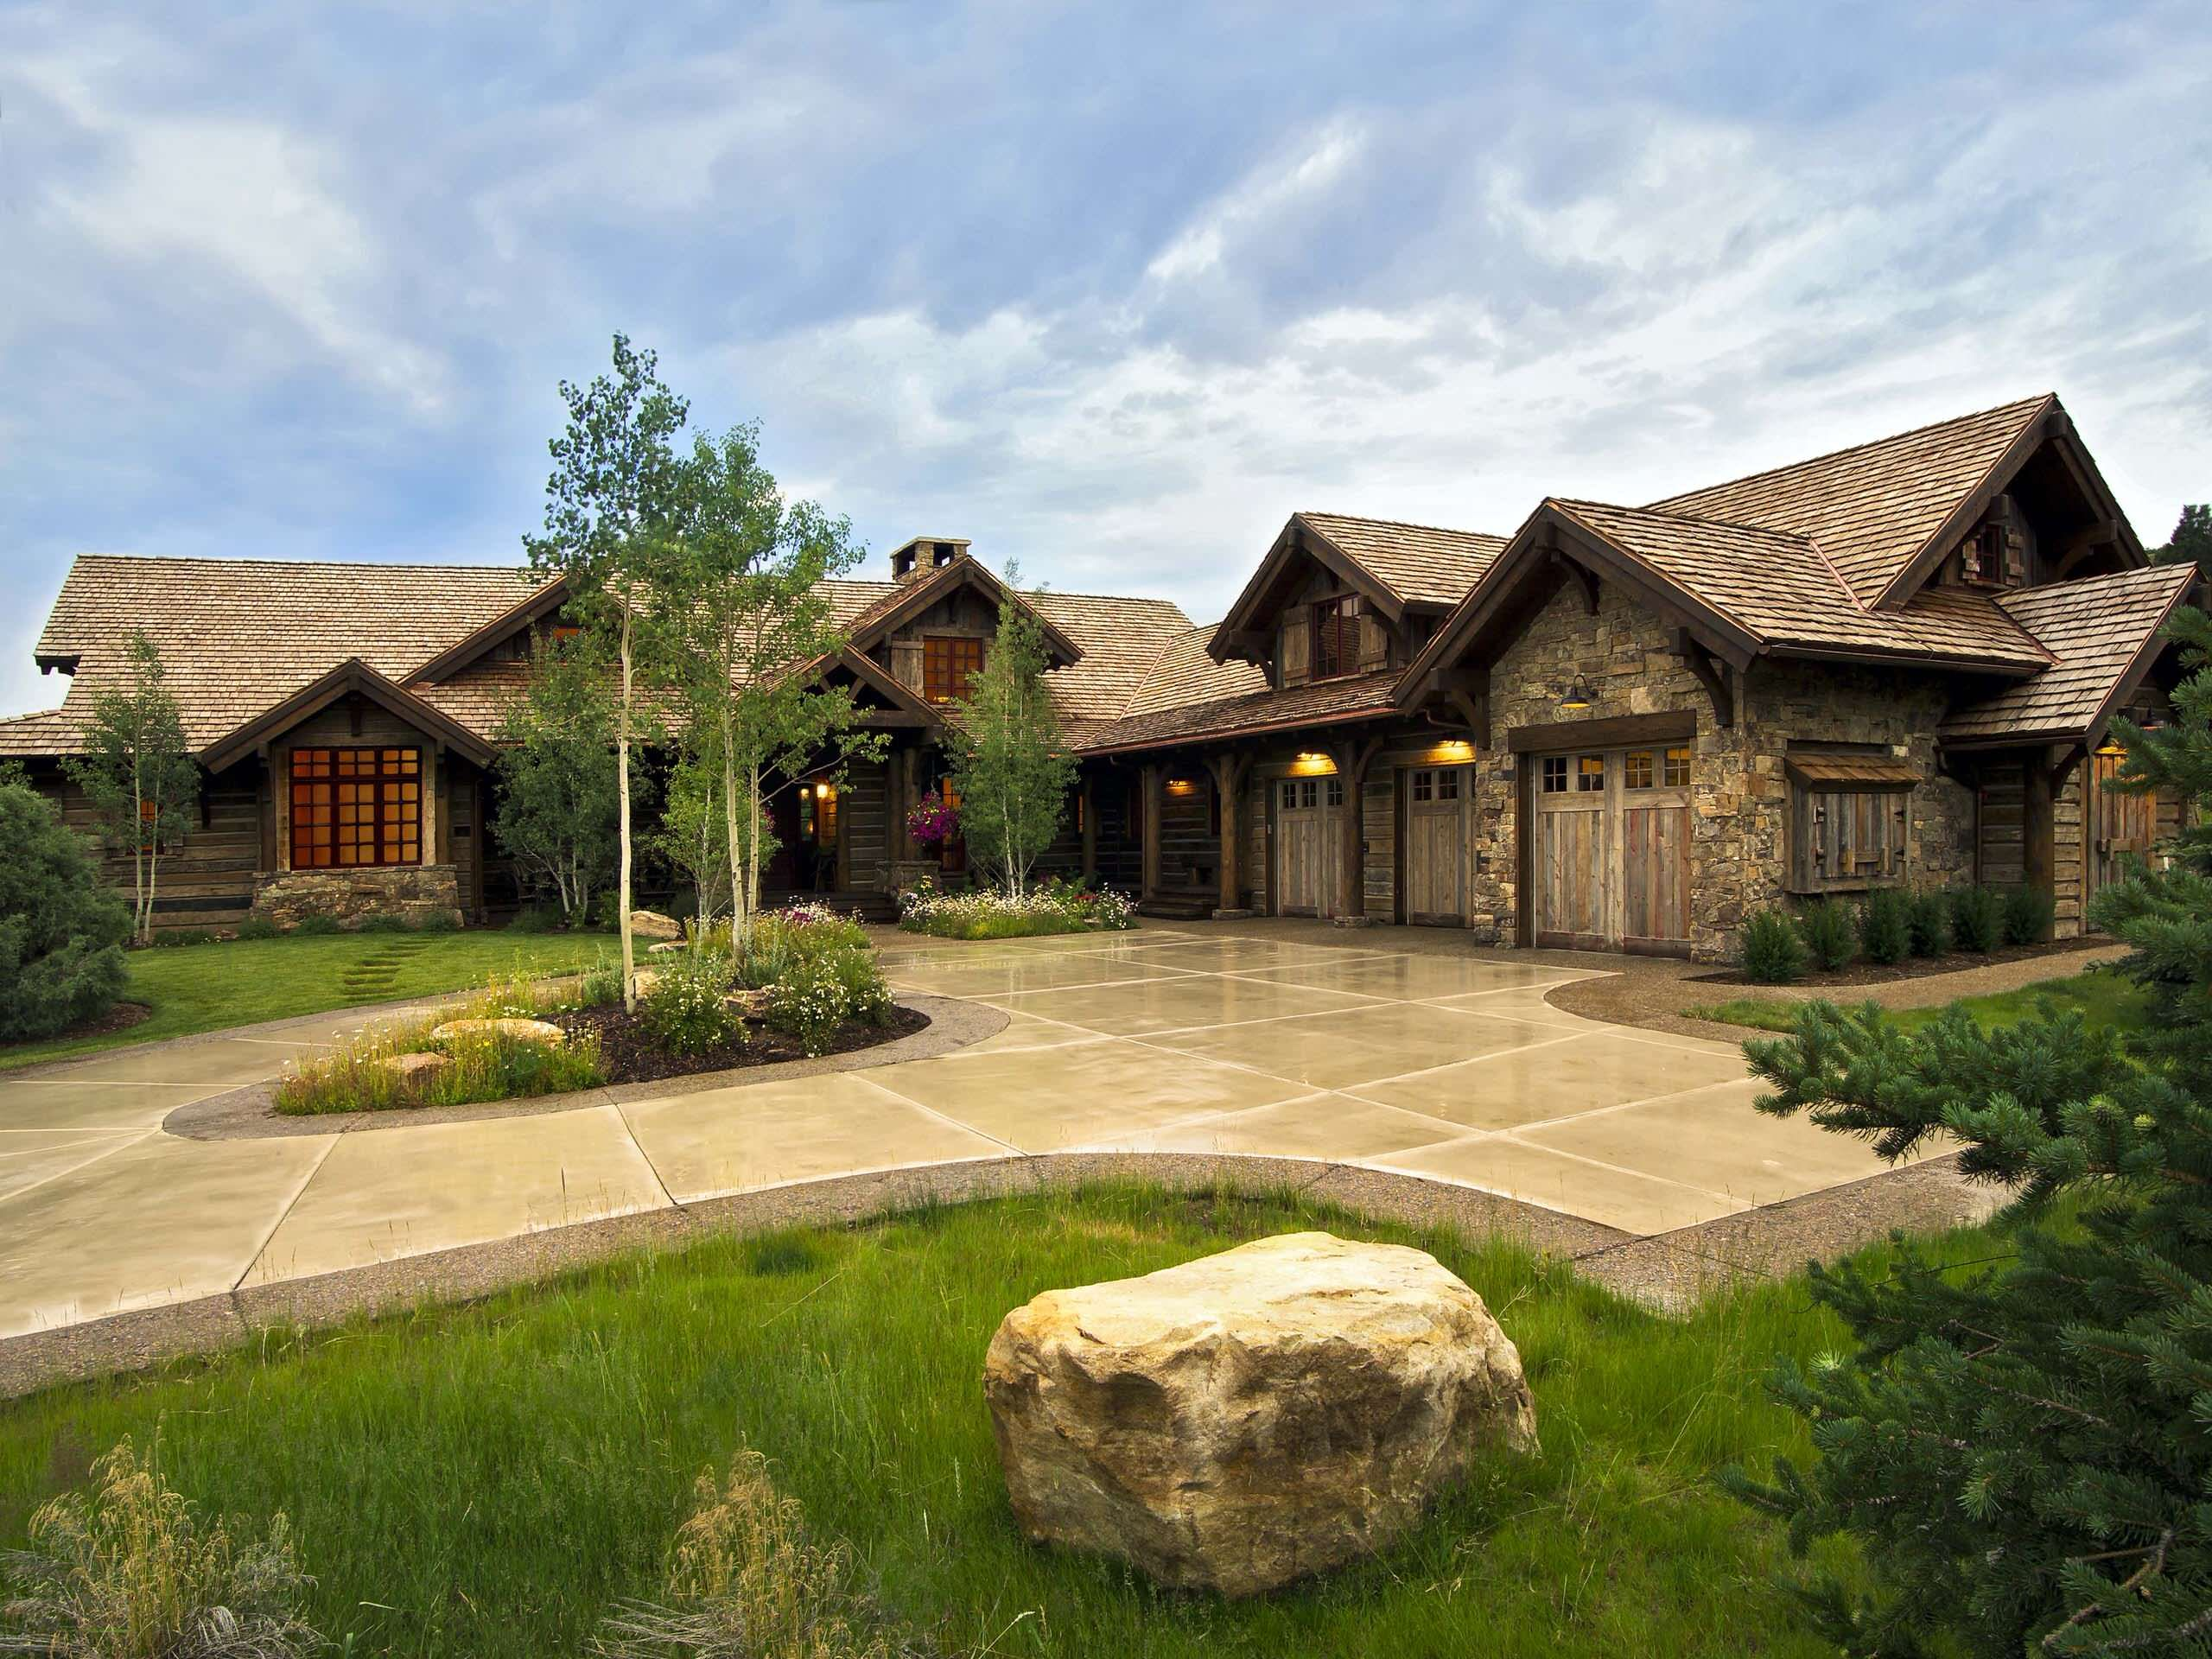 Harmonious Rustic Homes For Your Home Decor Beautiful Rustic Exterior Decoration For Rustic Homes W Rustic House Rustic Houses Exterior Mountain Home Exterior